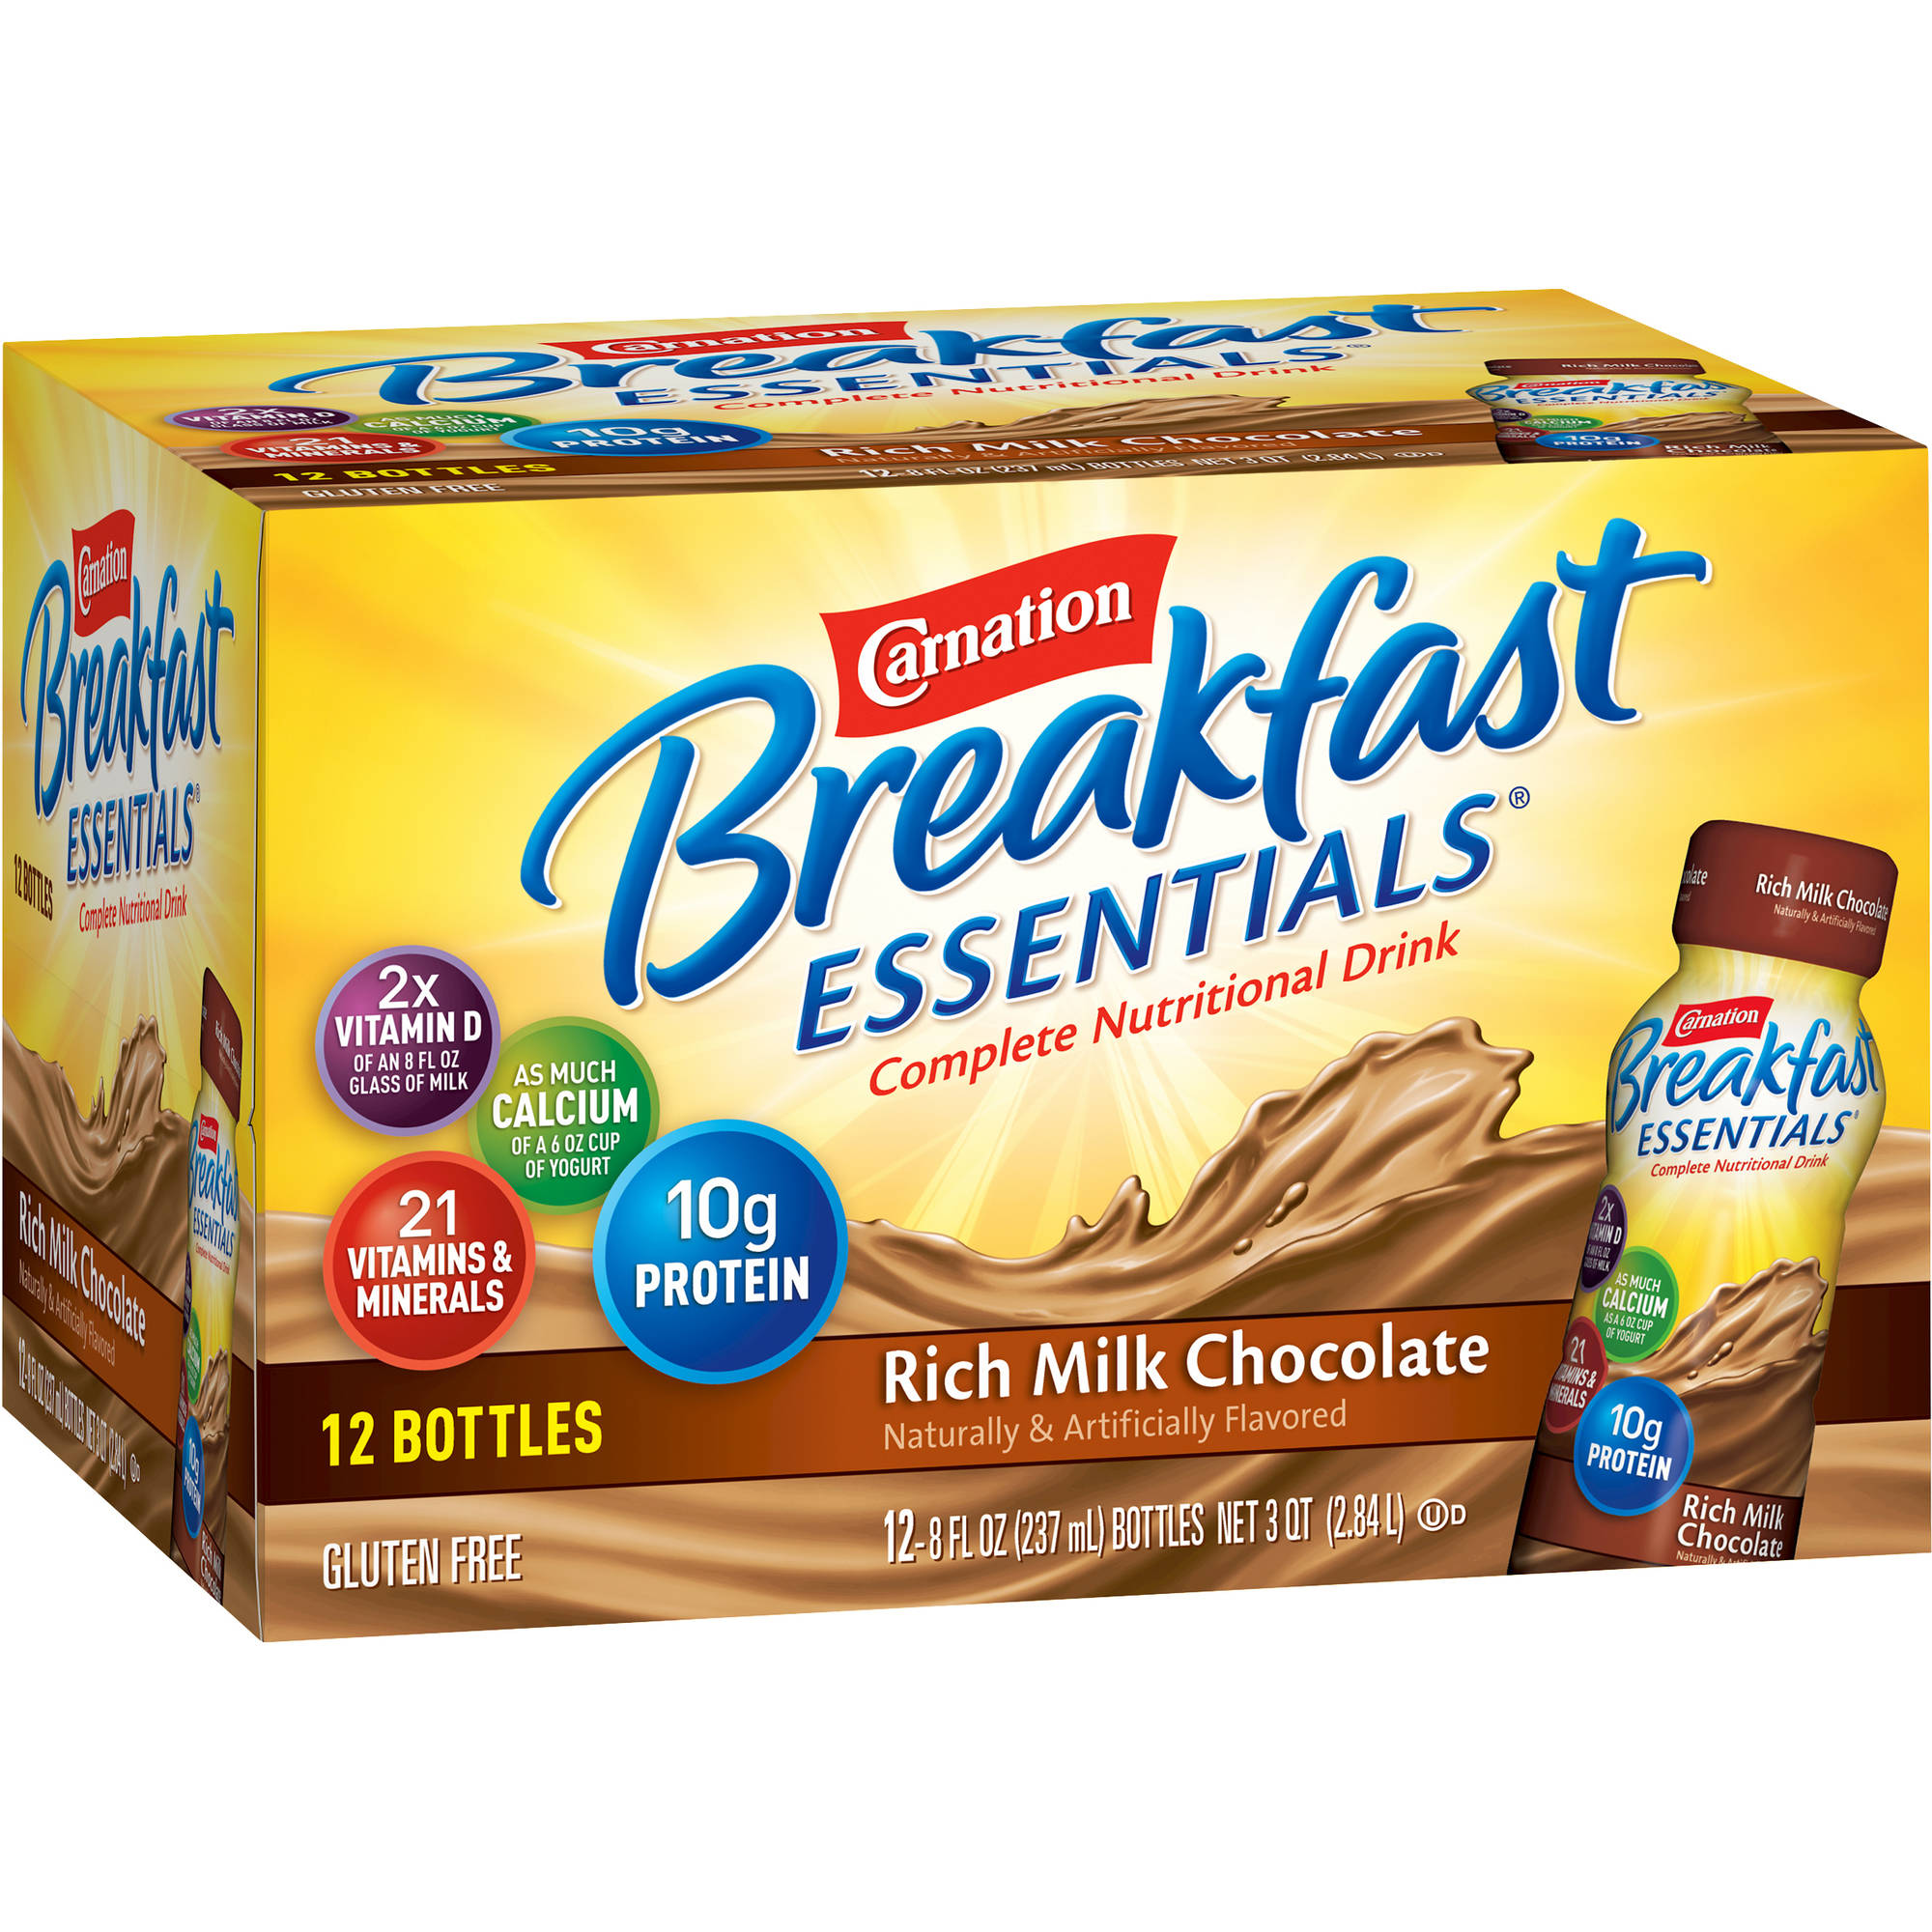 Carnation Breakfast Essentials® Rich Milk Chocolate Complete Nutritional Drinks, 8 fl oz, 12 count